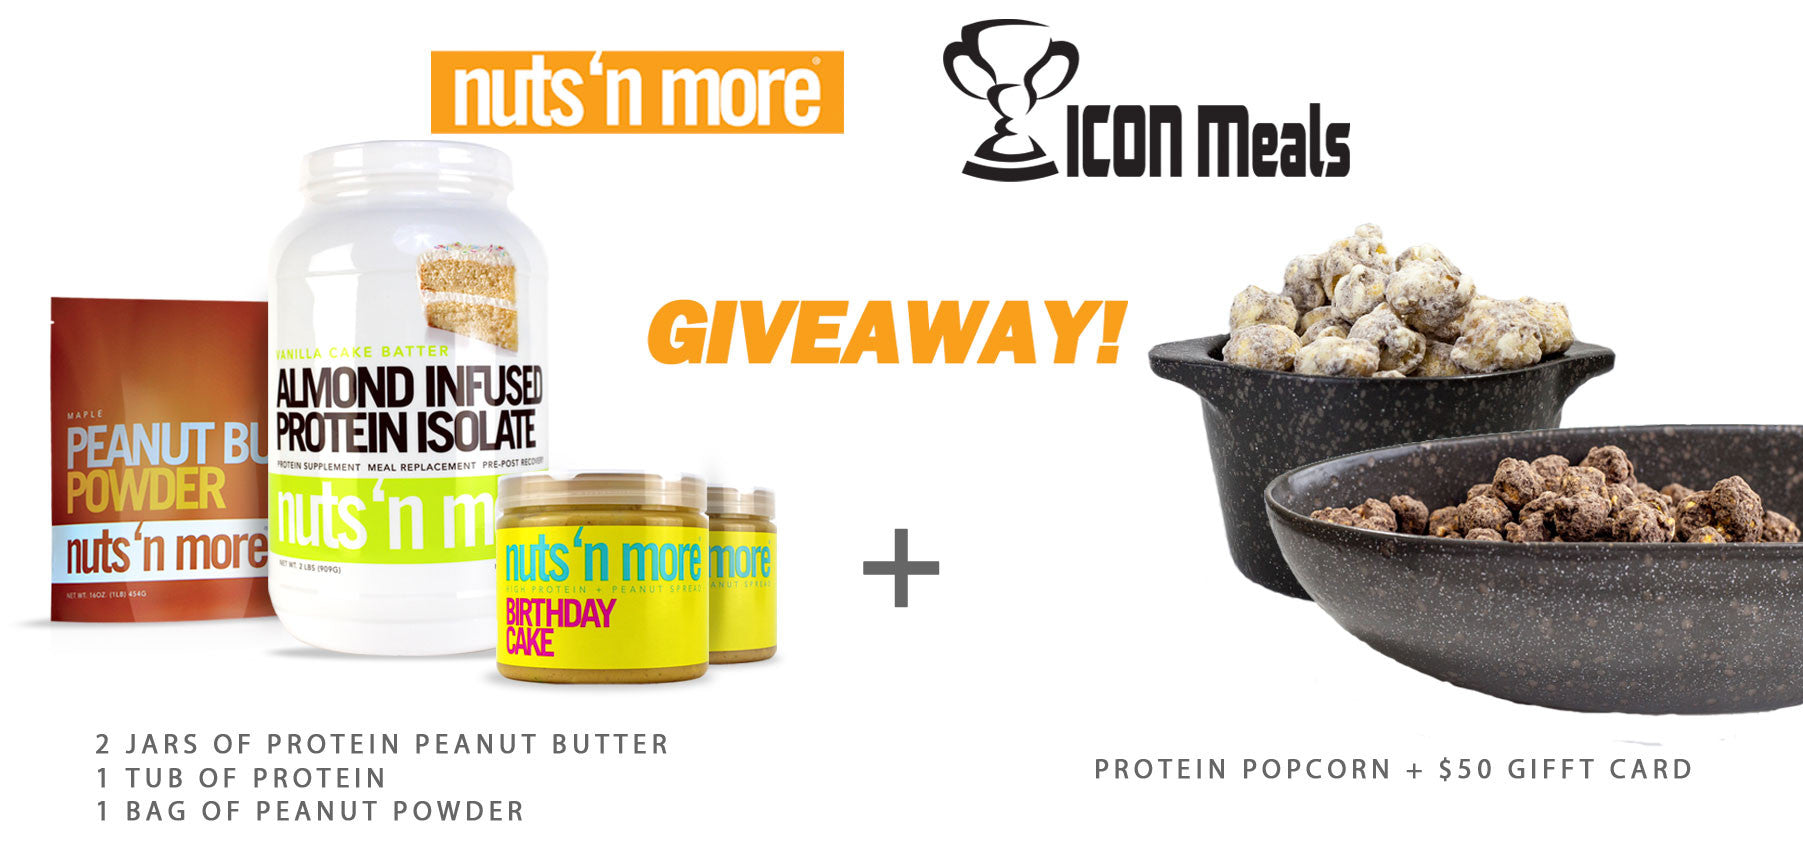 nuts n more icon meals